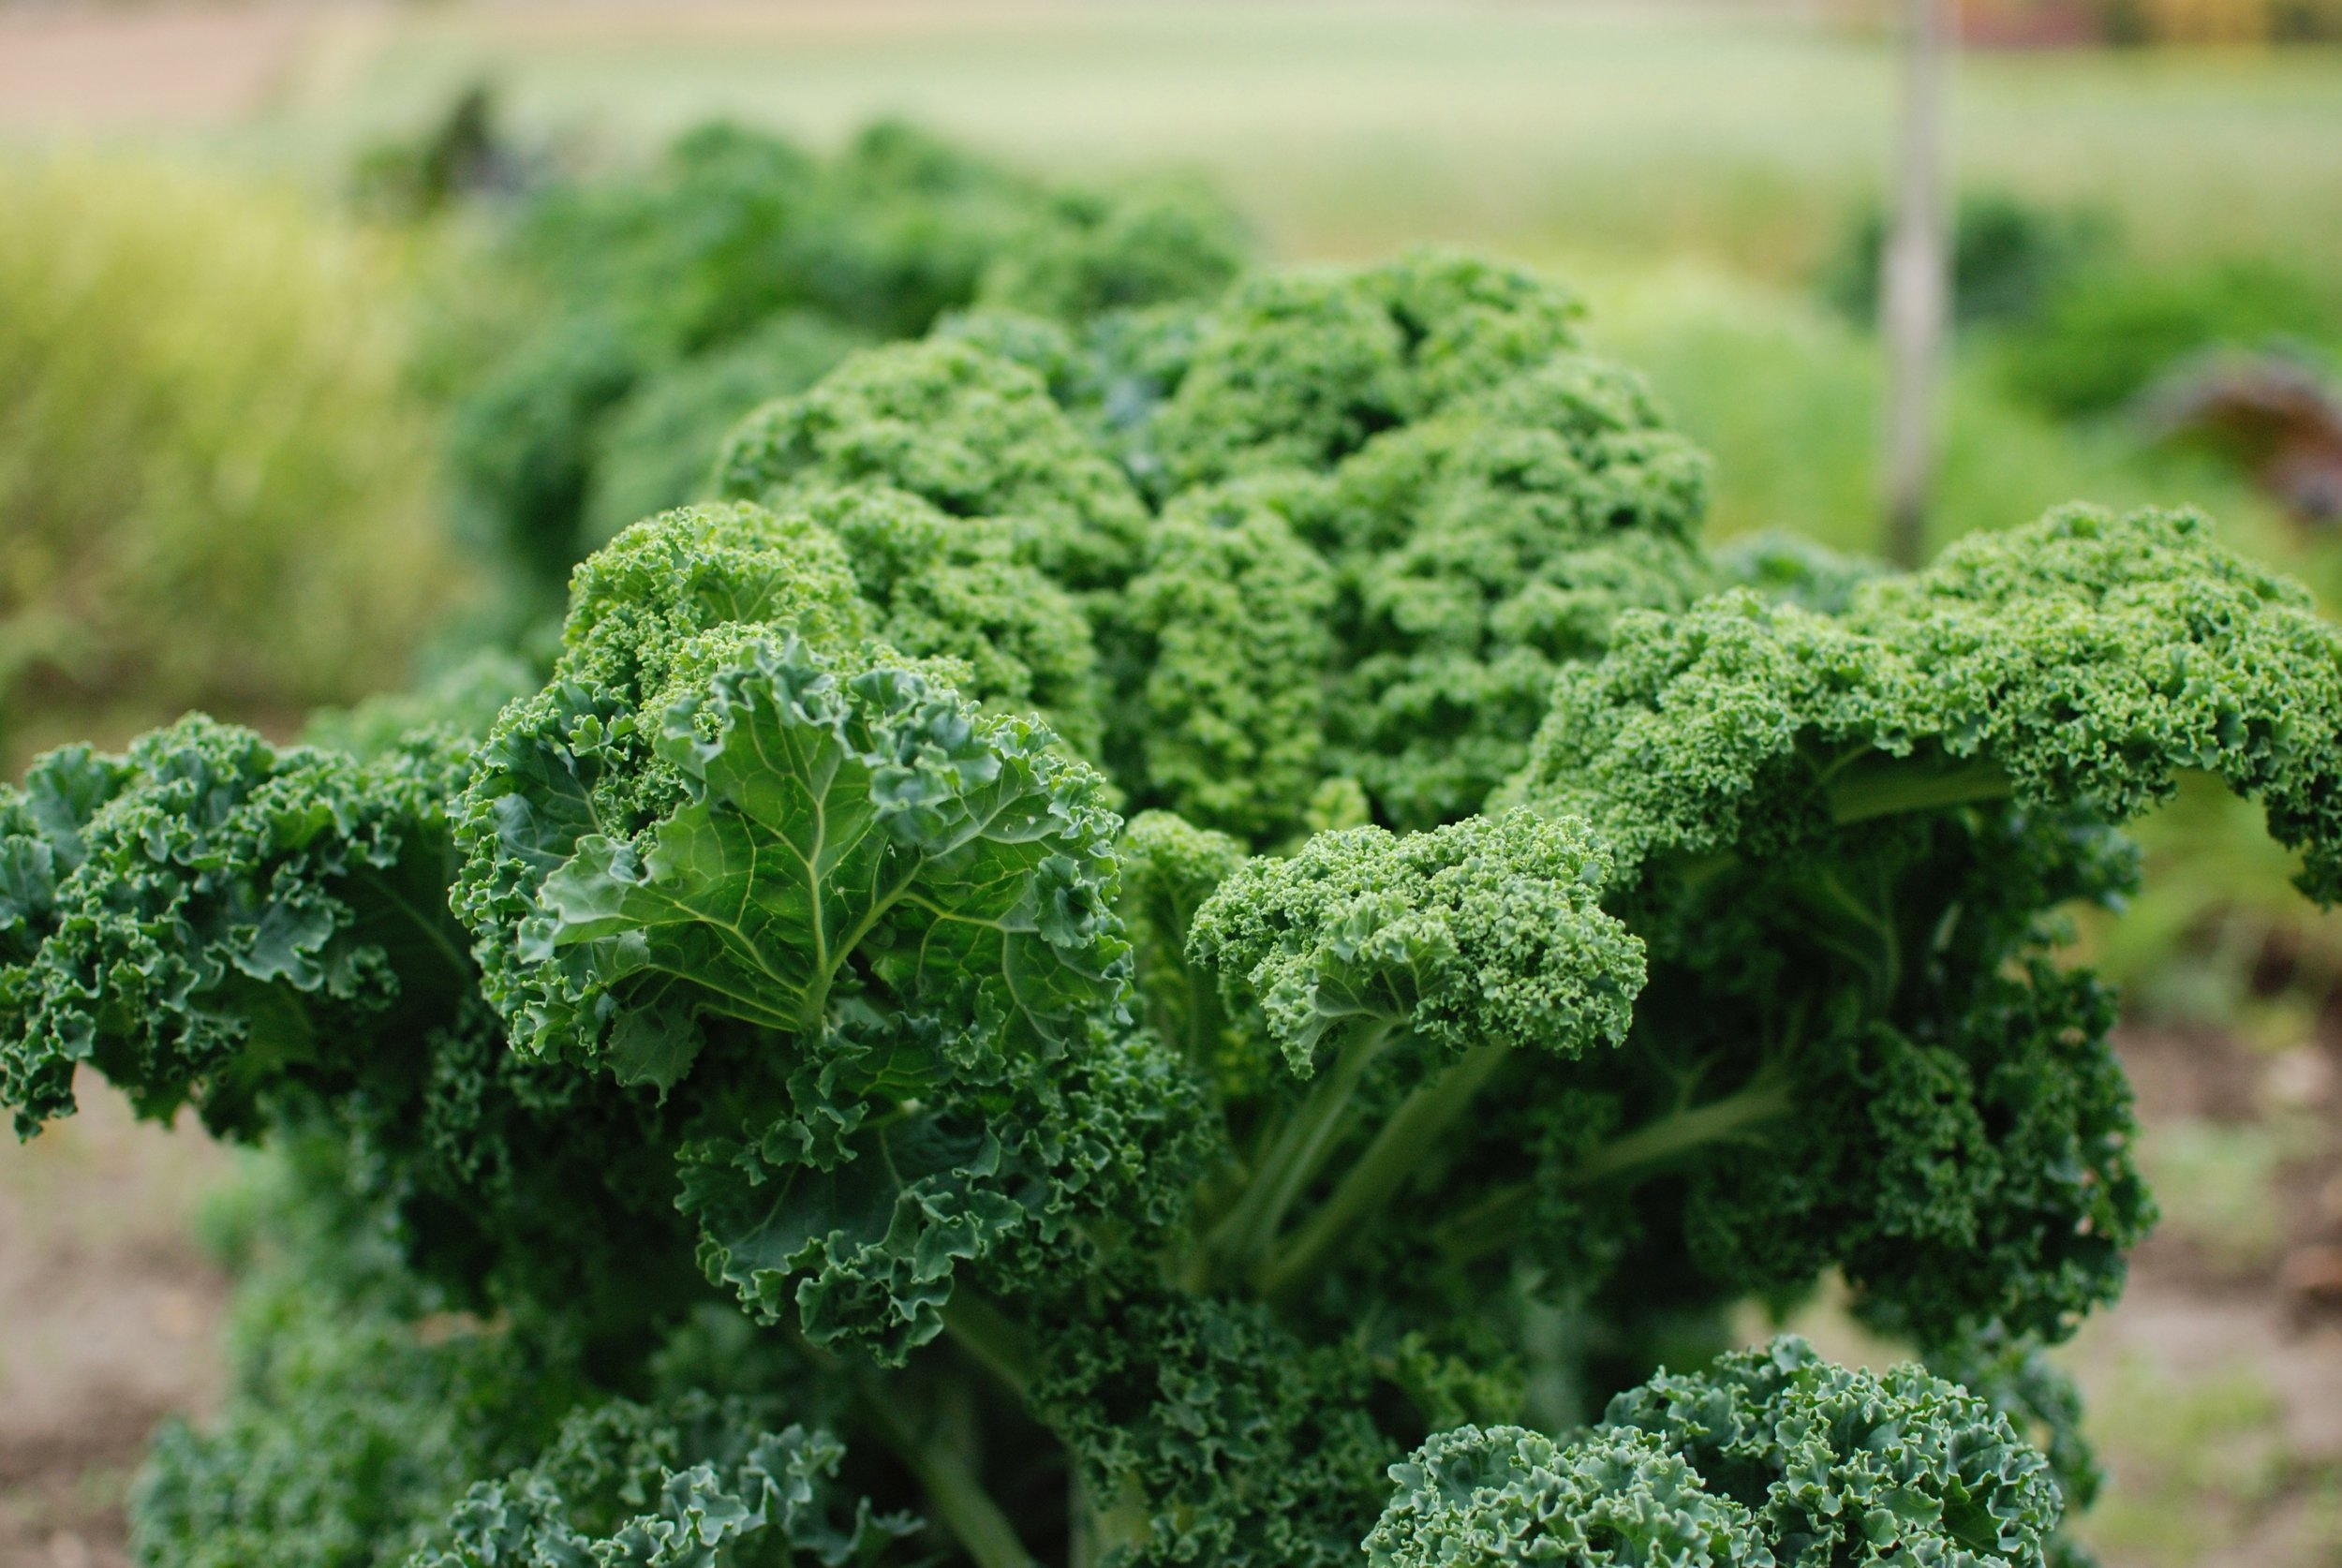 Kale is a hearty plant and very easy to grow! This beauty is growing in our garden right now!